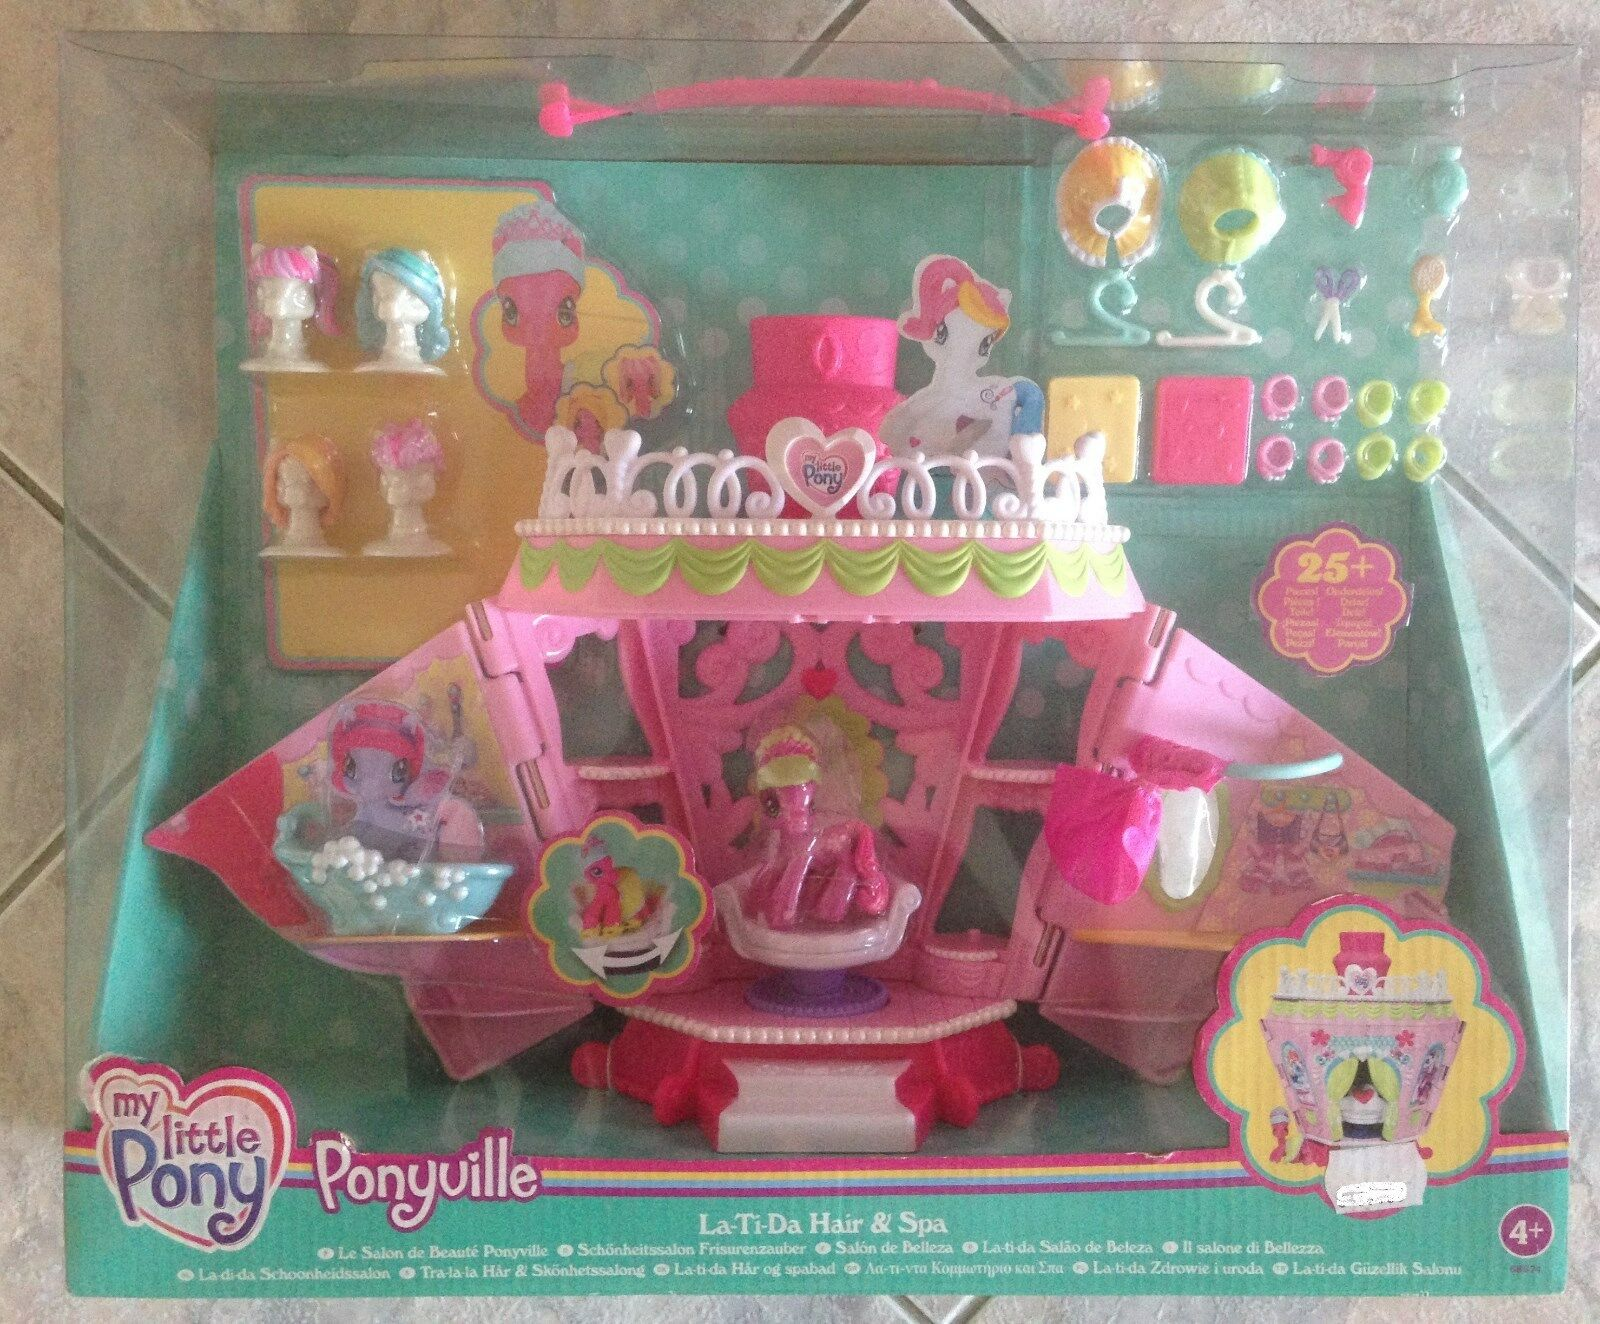 Pony Ponyville La-My Little Ti-da Hair & Spa Salon Jugarset CHEERILEE pelucas de menta en caja